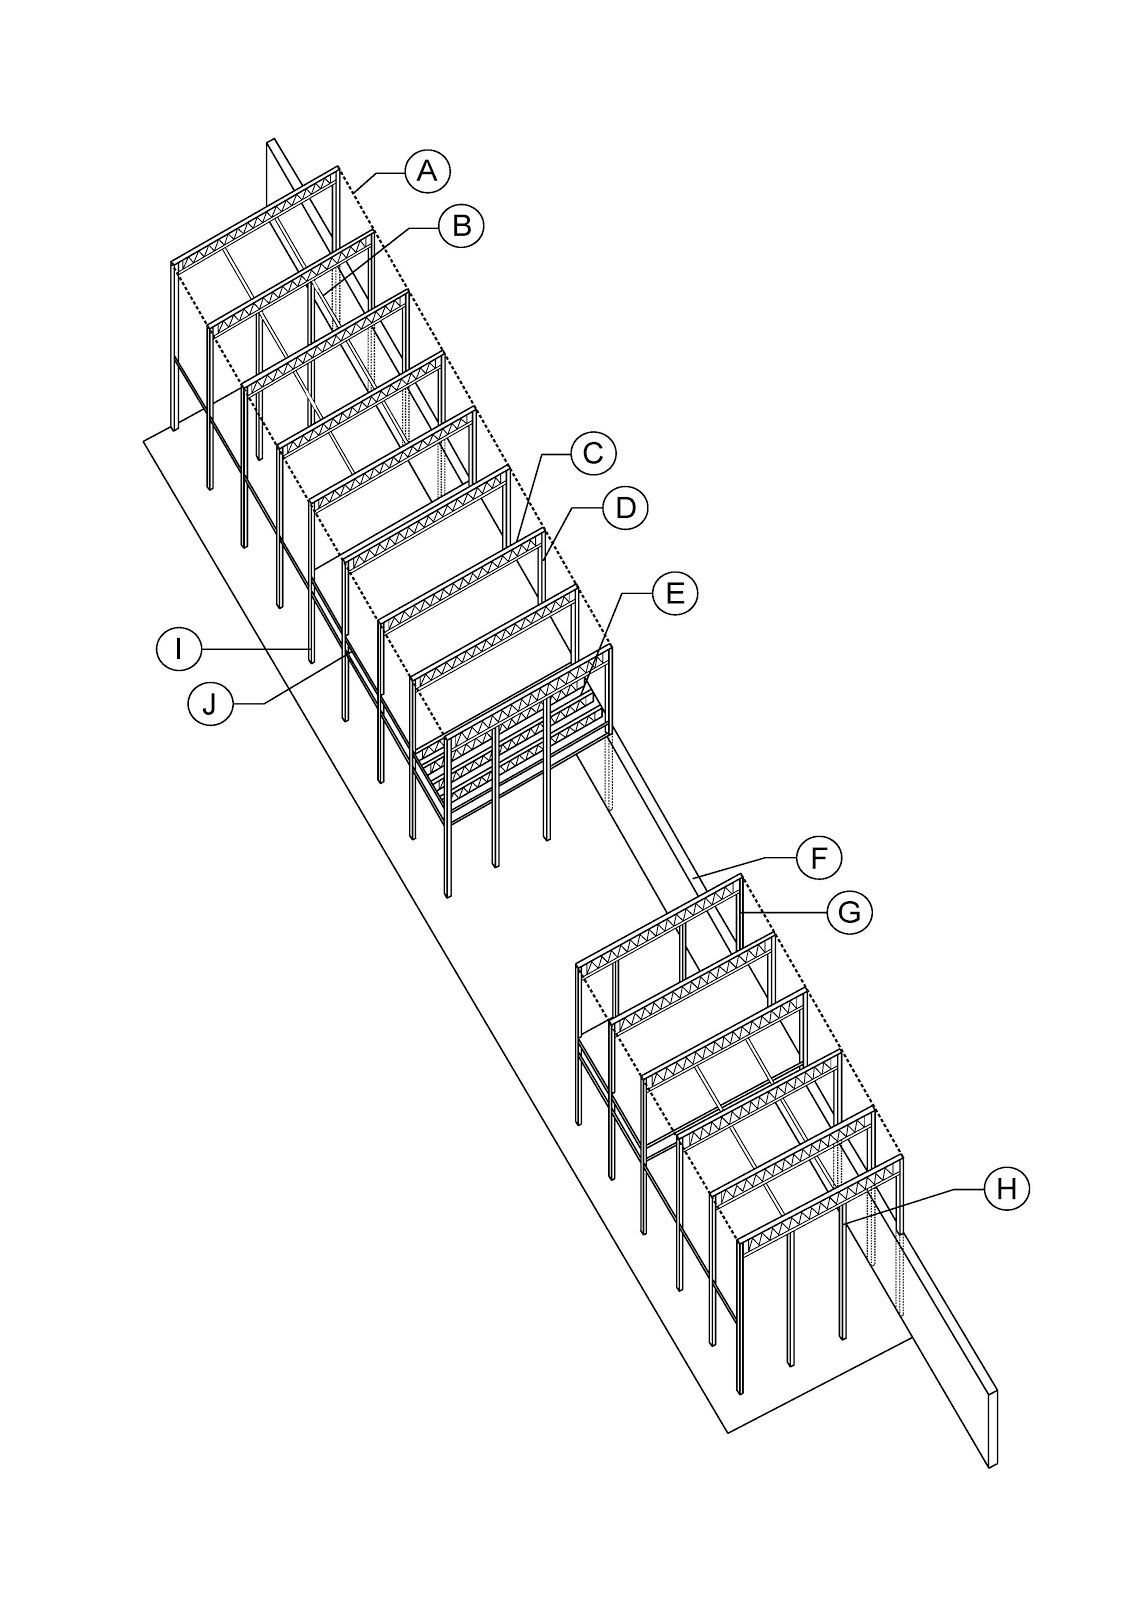 Pleasing Eames House Exploded Axonometric Of Eames House Charles And Ray Largest Home Design Picture Inspirations Pitcheantrous